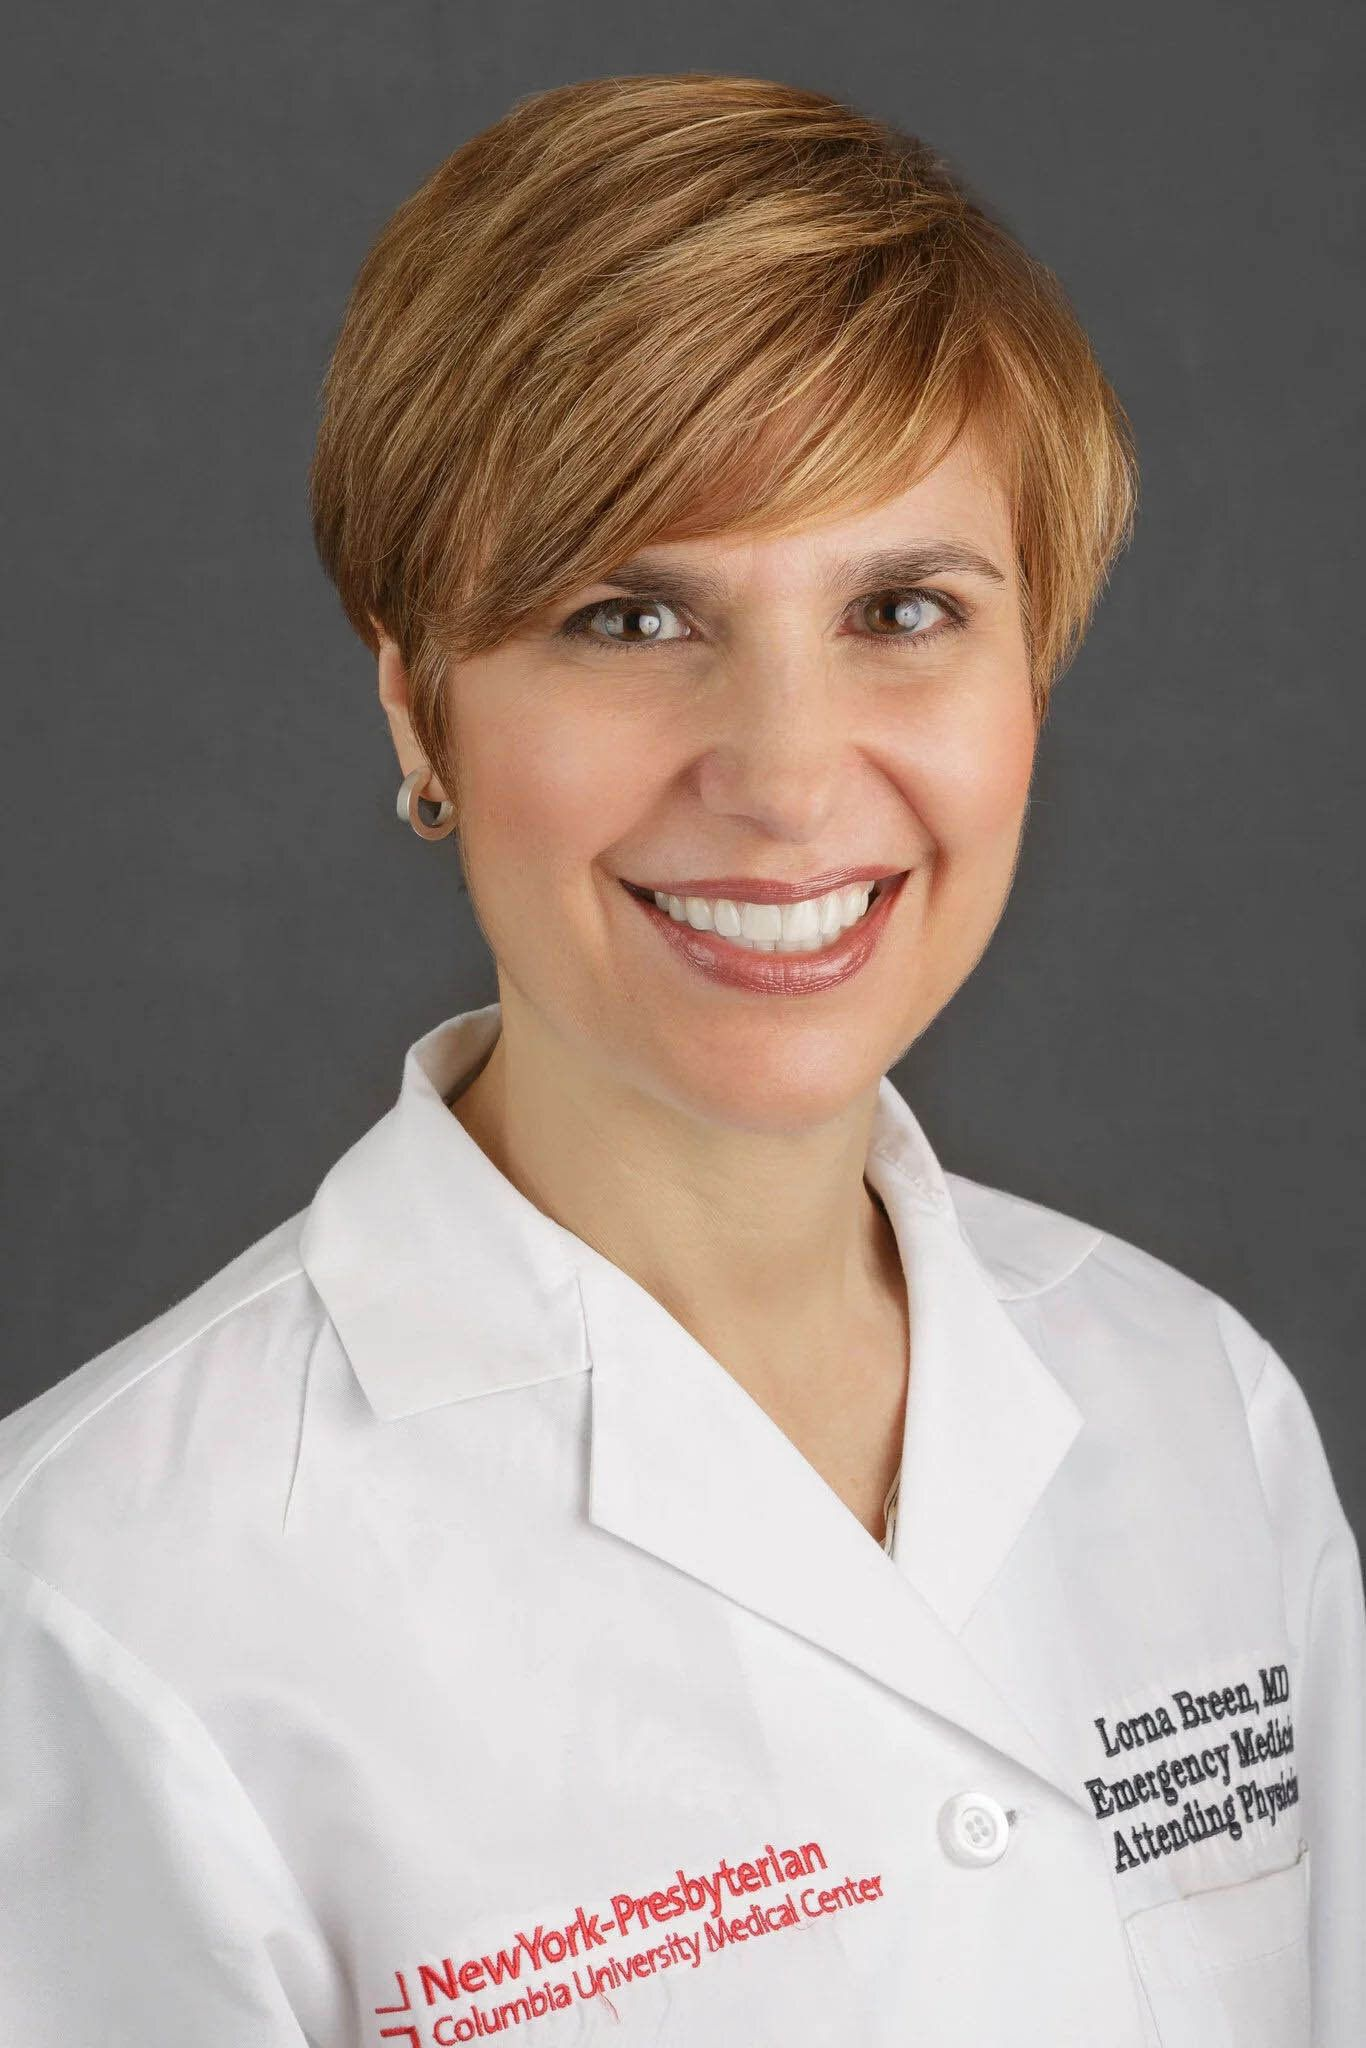 Dr. Lorna Breen served as the medical director of the emergency department at New York-Presbyterian Allen Hospital in Manhatt